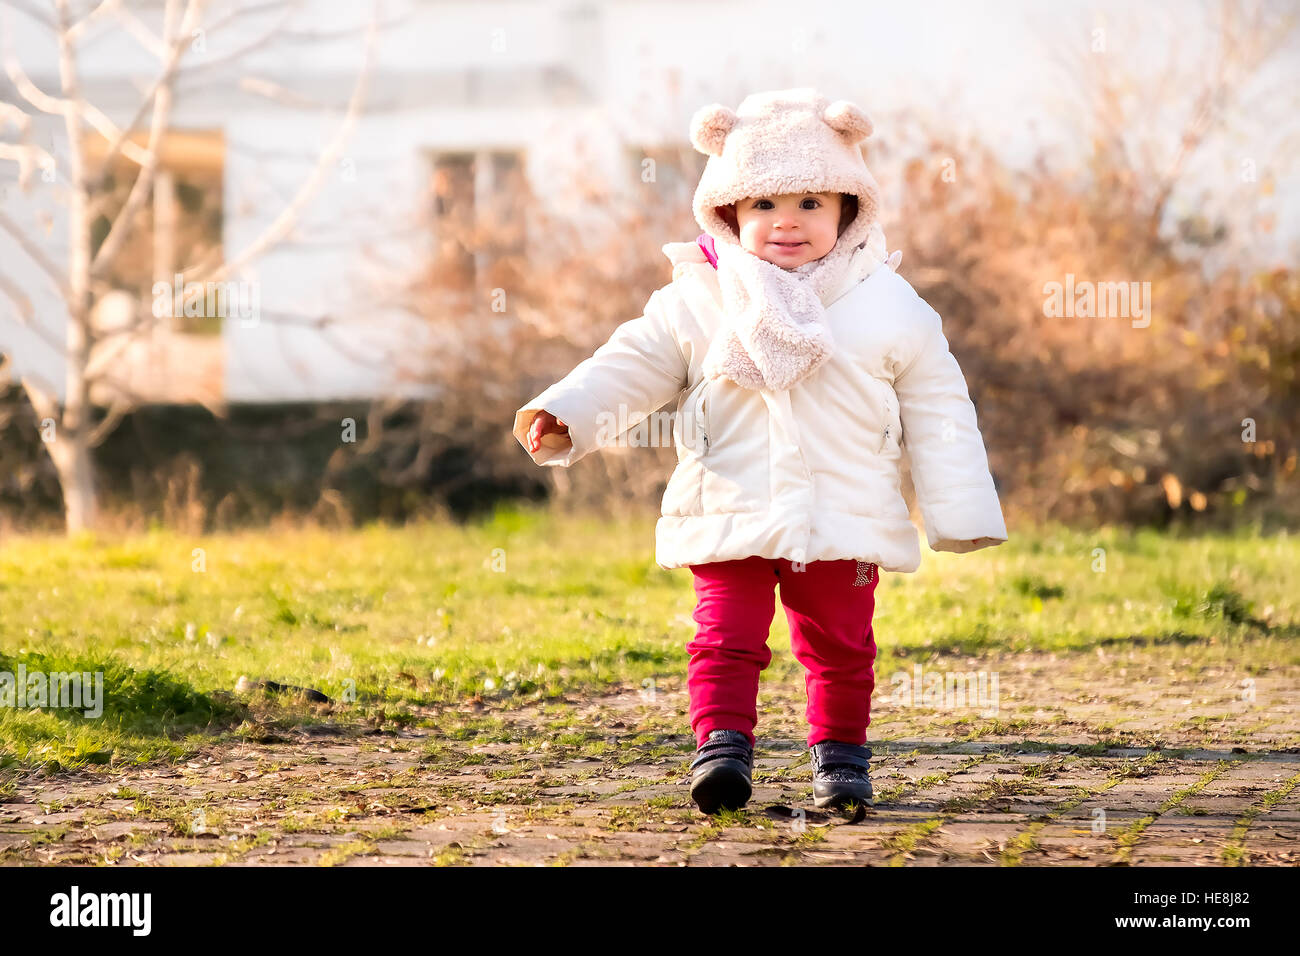 baby cap with ears newborn walking park winter dressed first steps - Stock Image